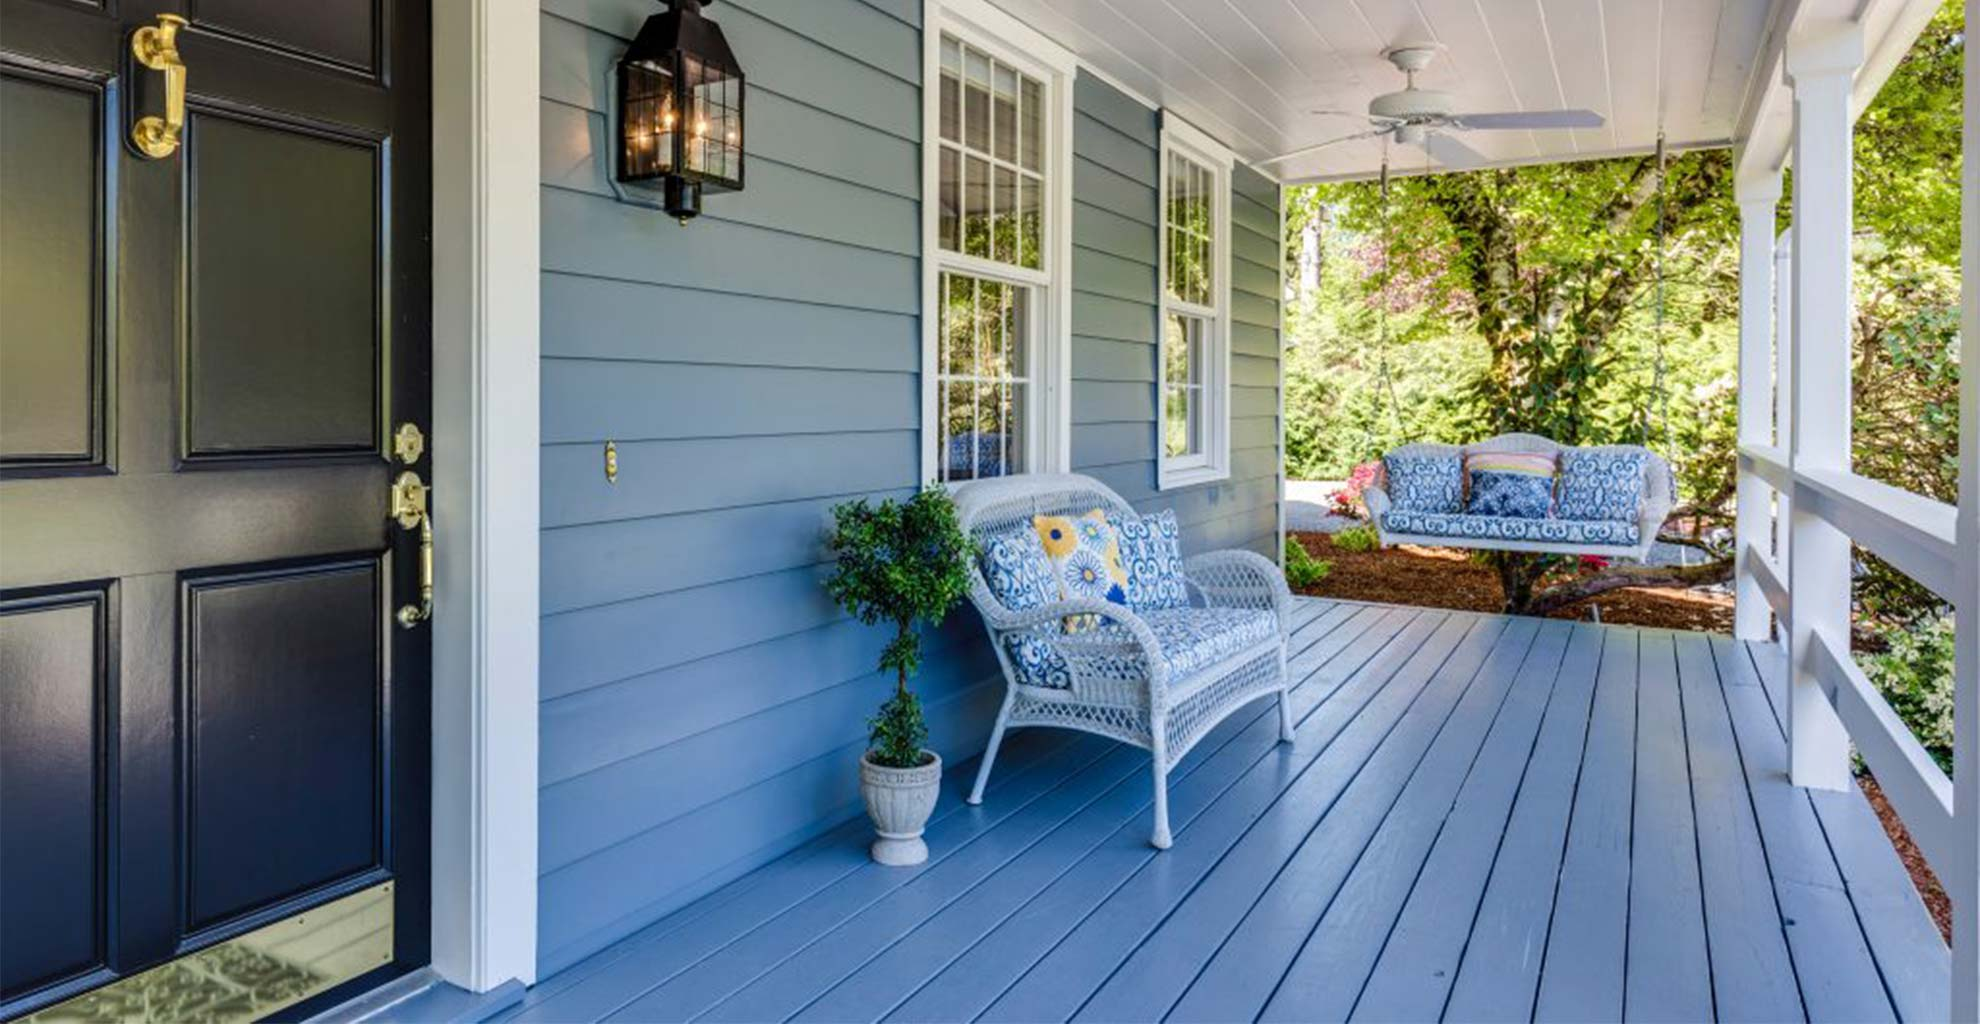 Which Loan is Best for First-Time Home Buyers?